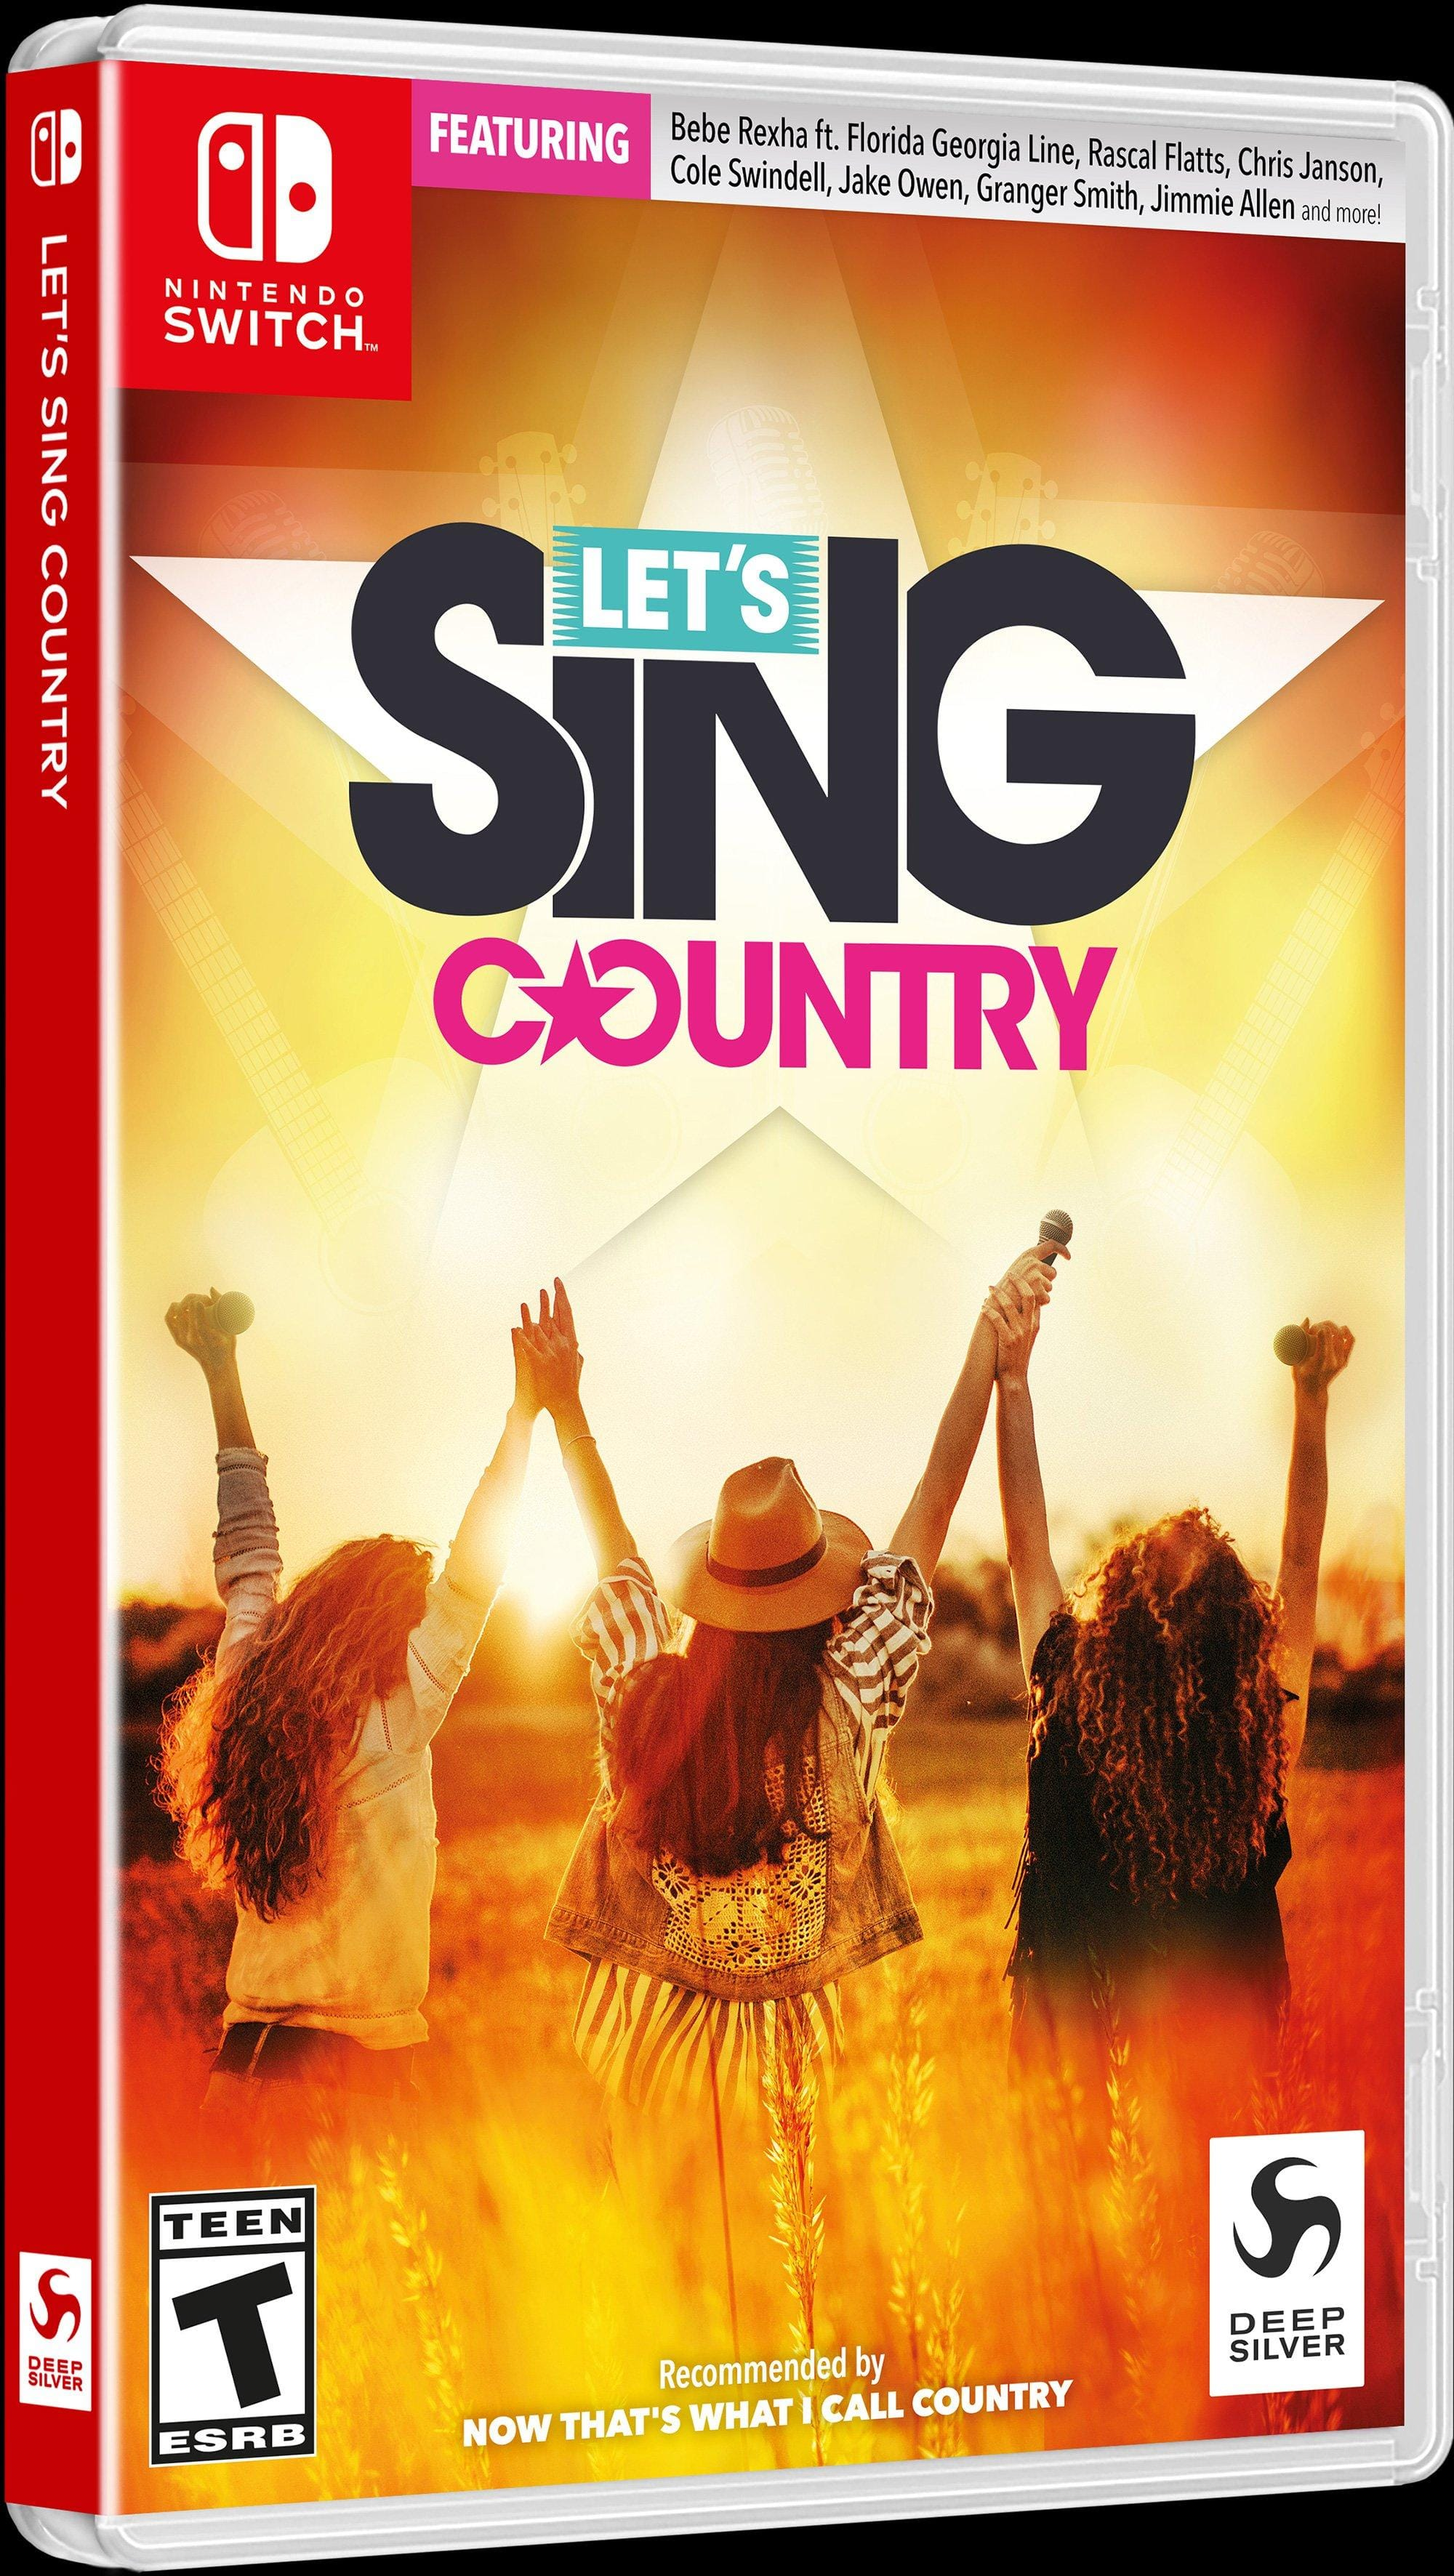 GameStop: Let's Sing Country $4.99 New Nintendo Switch Version